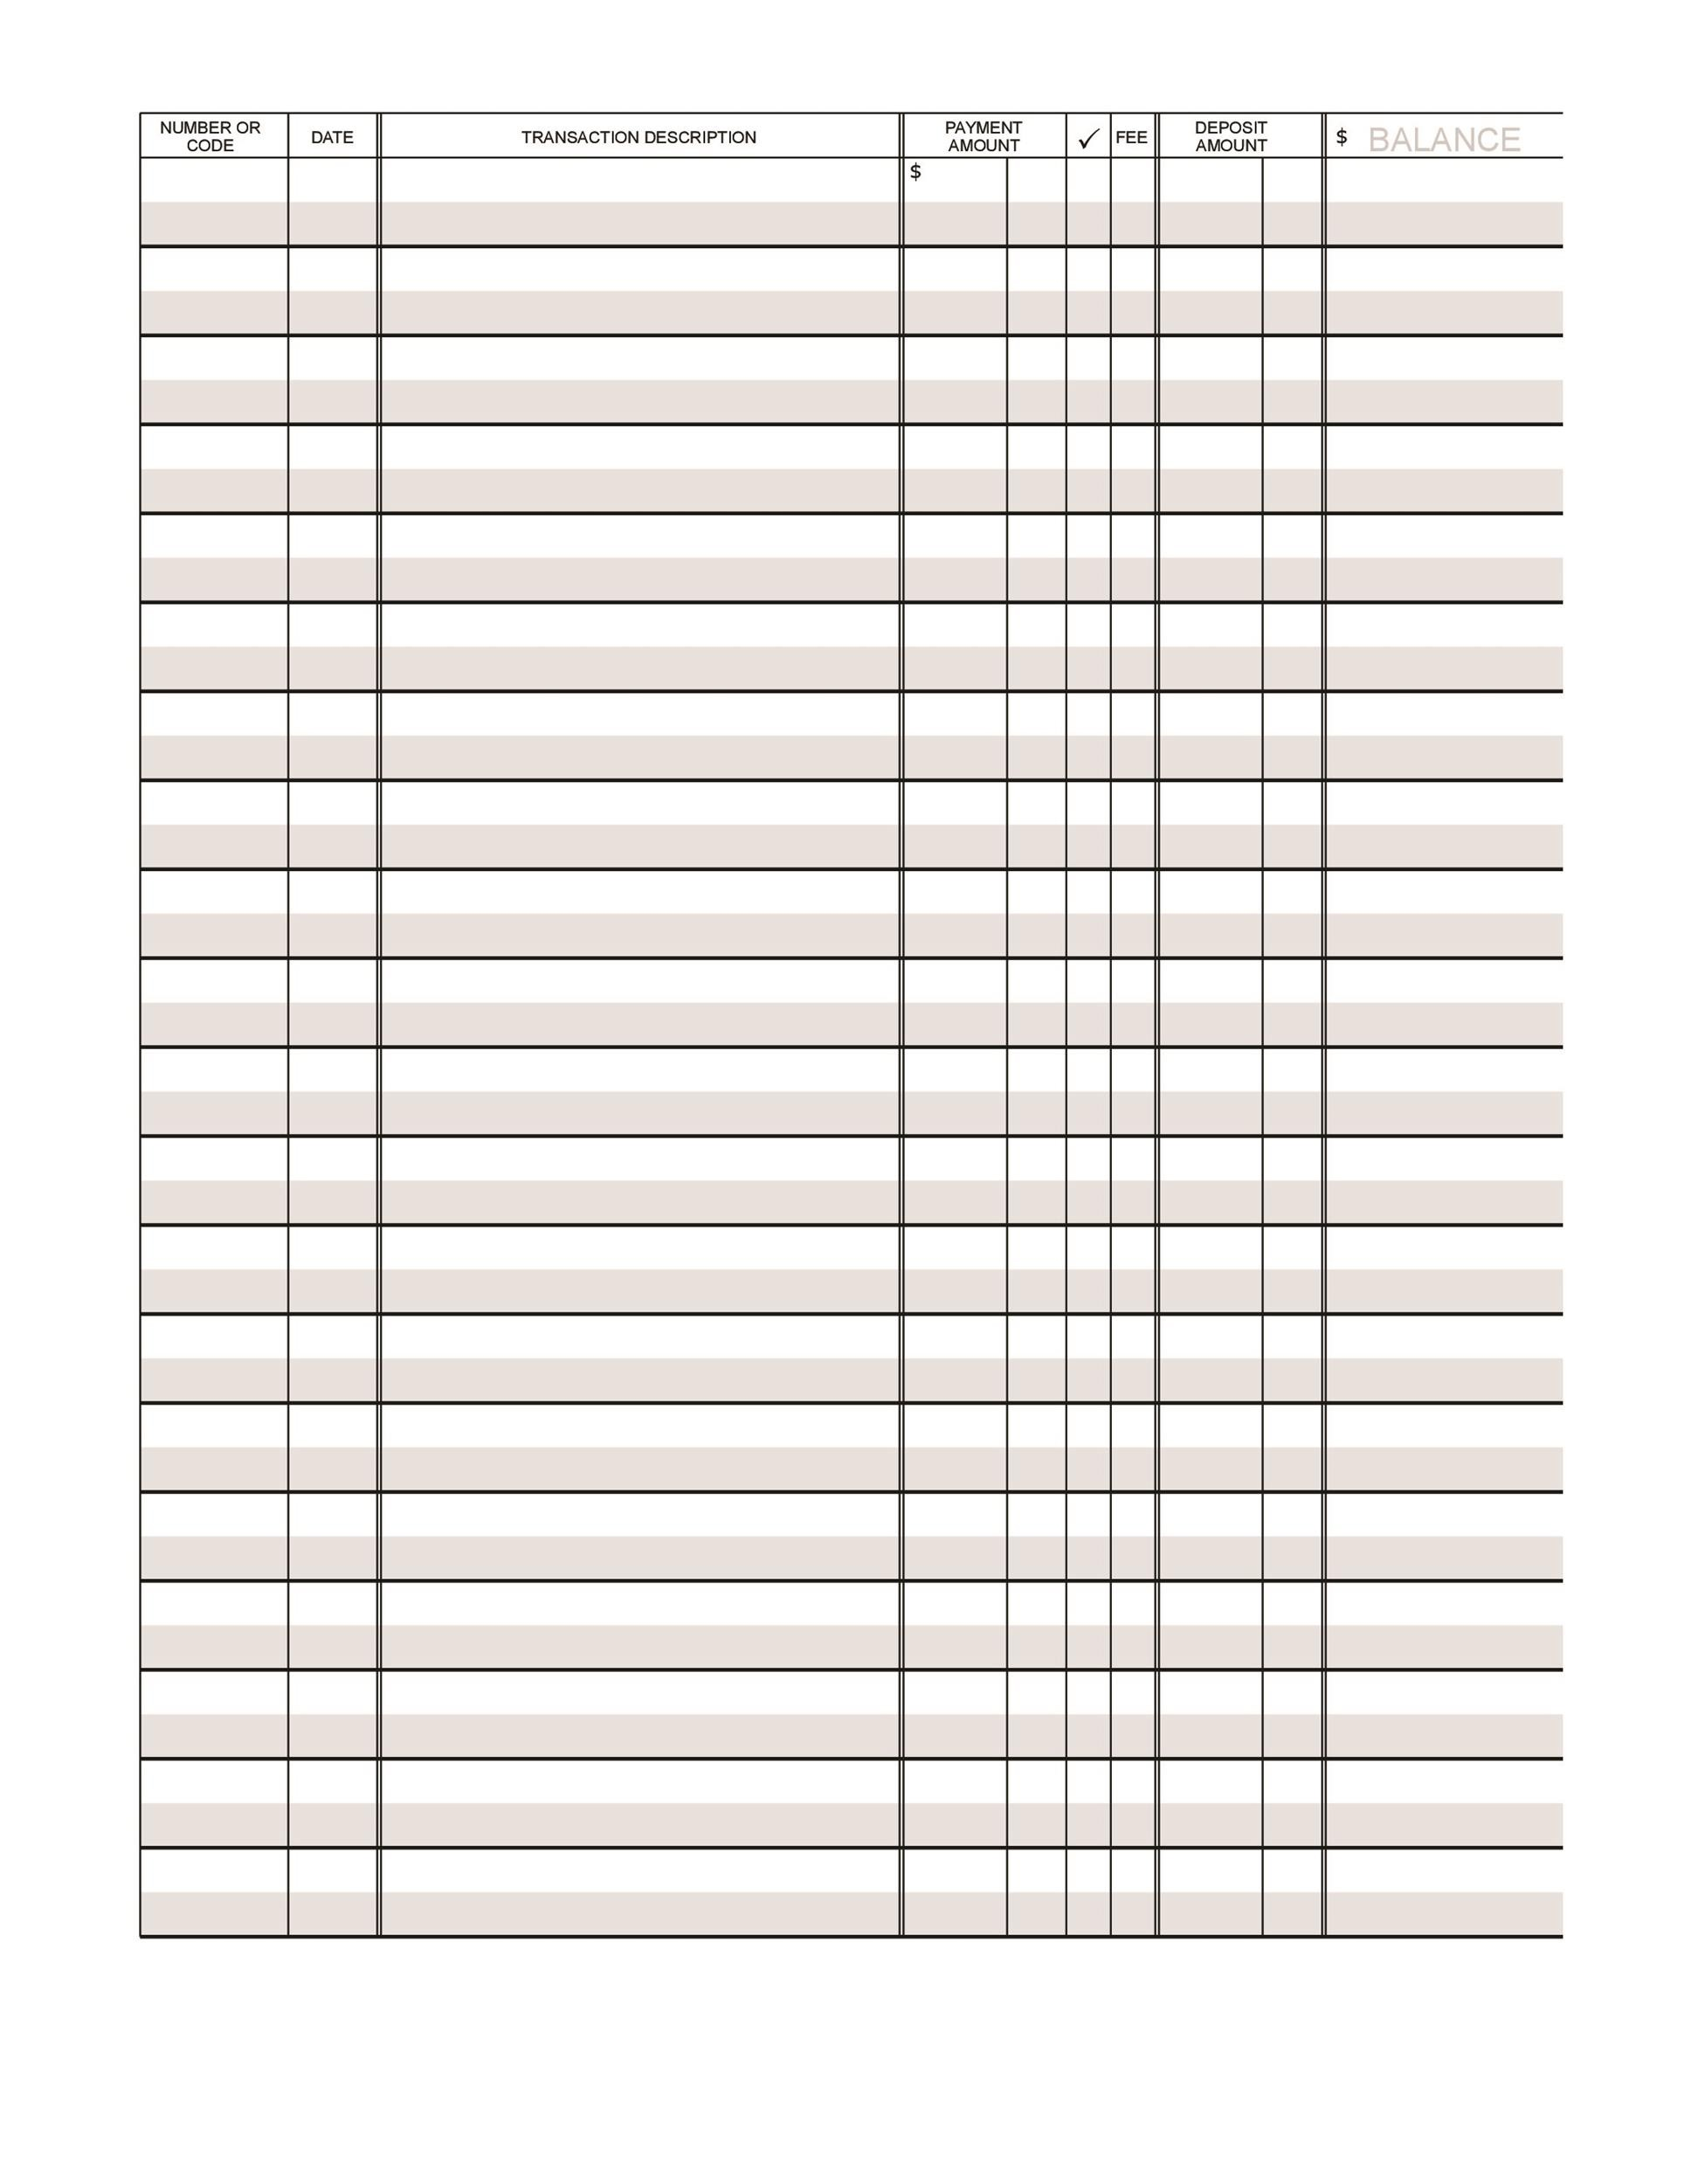 picture relating to Free Printable Check Register With Running Balance called 37 Checkbook Sign up Templates [100% Cost-free, Printable] ᐅ